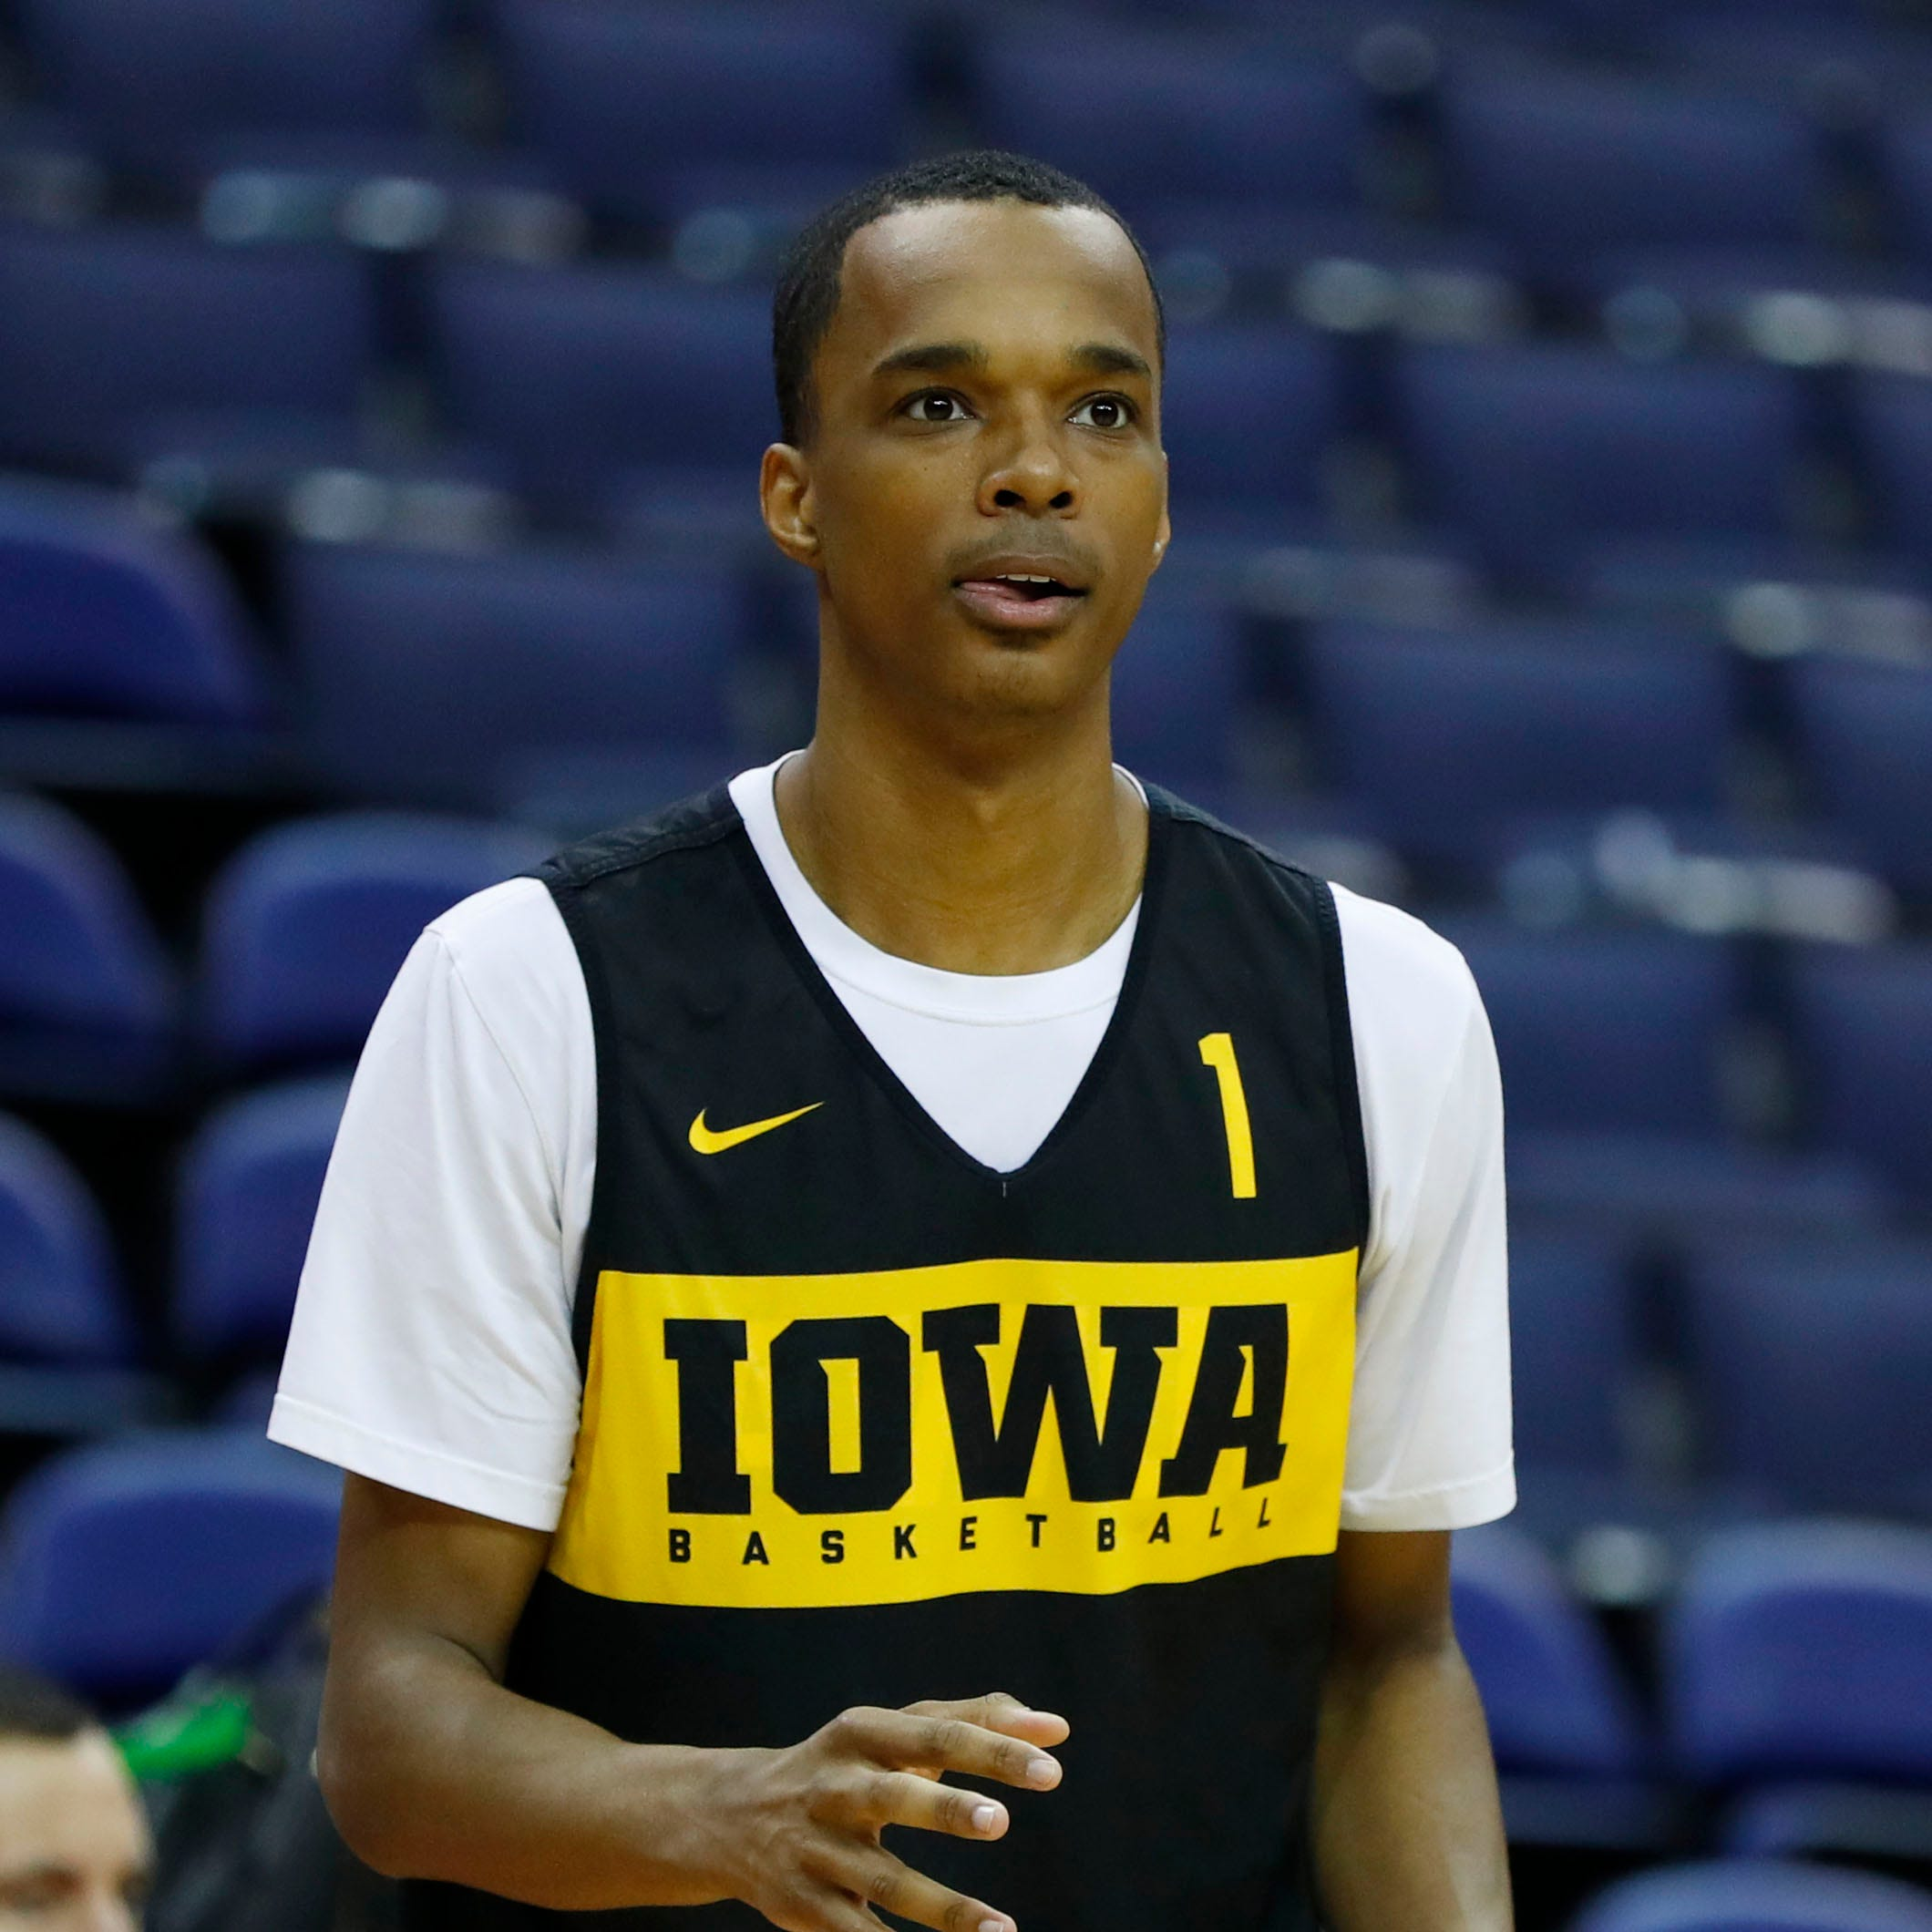 Junior guard Maishe Dailey will transfer from Iowa basketball team